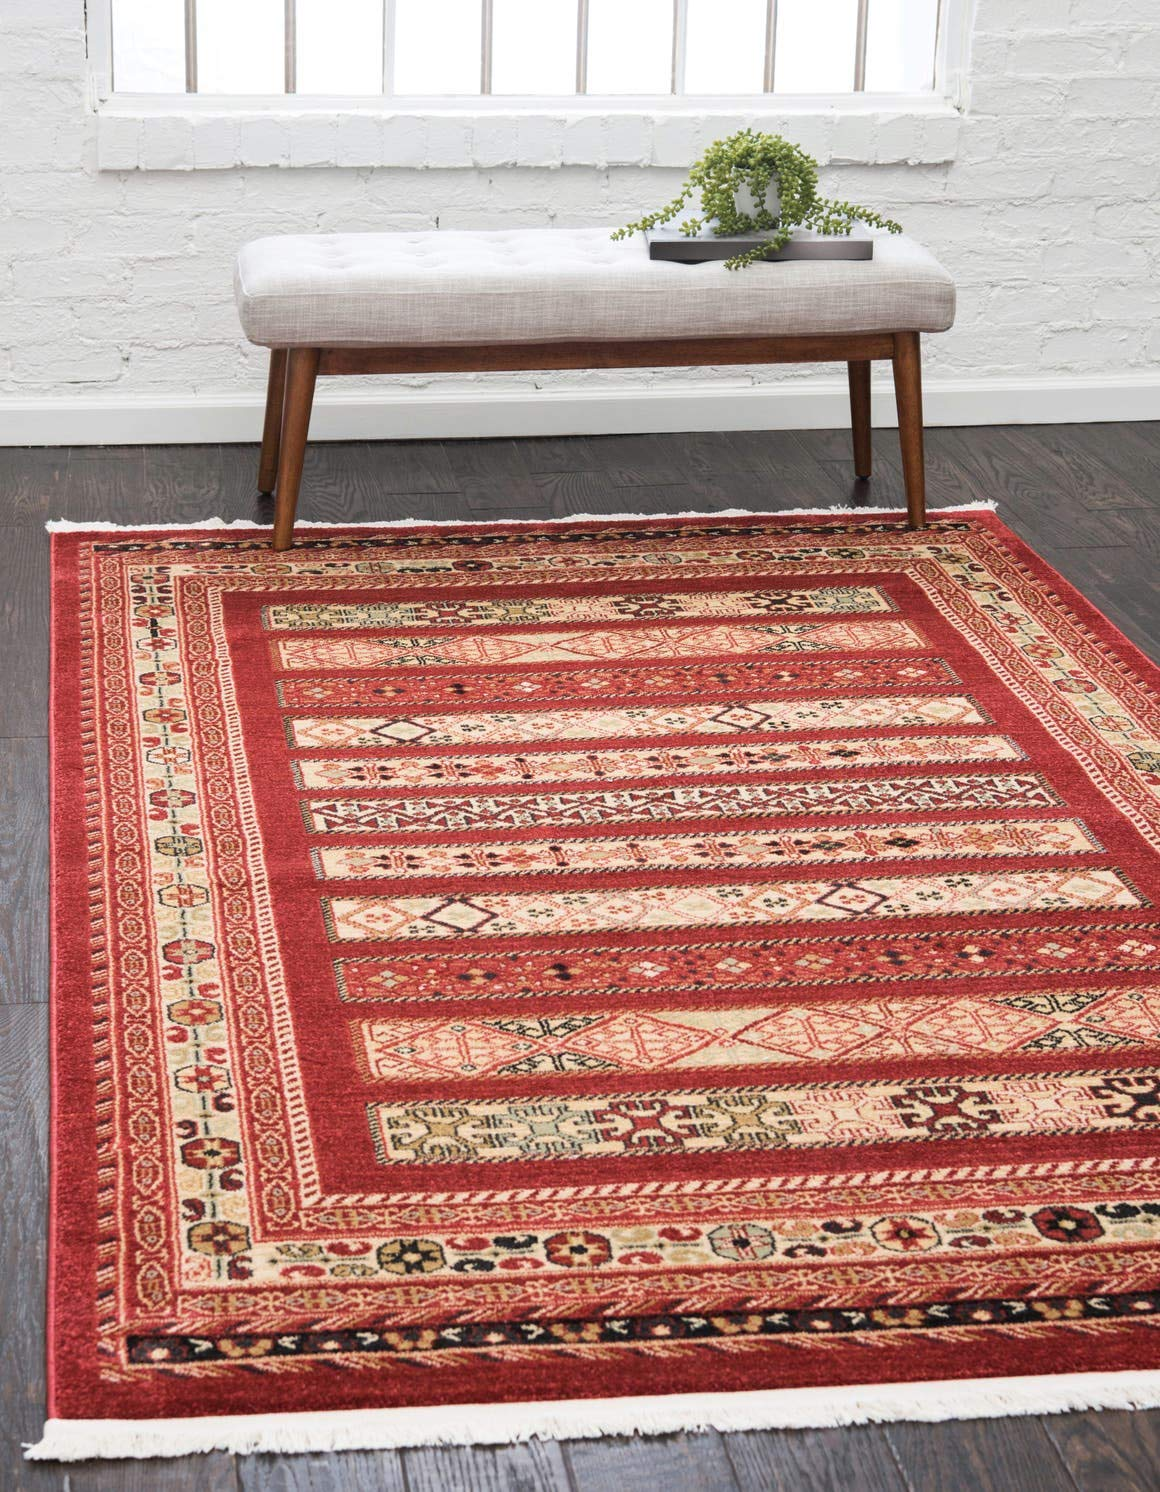 Unique Loom Fars Collection Tribal Modern Casual Rust Red Area Rug 4 0 x 6 0